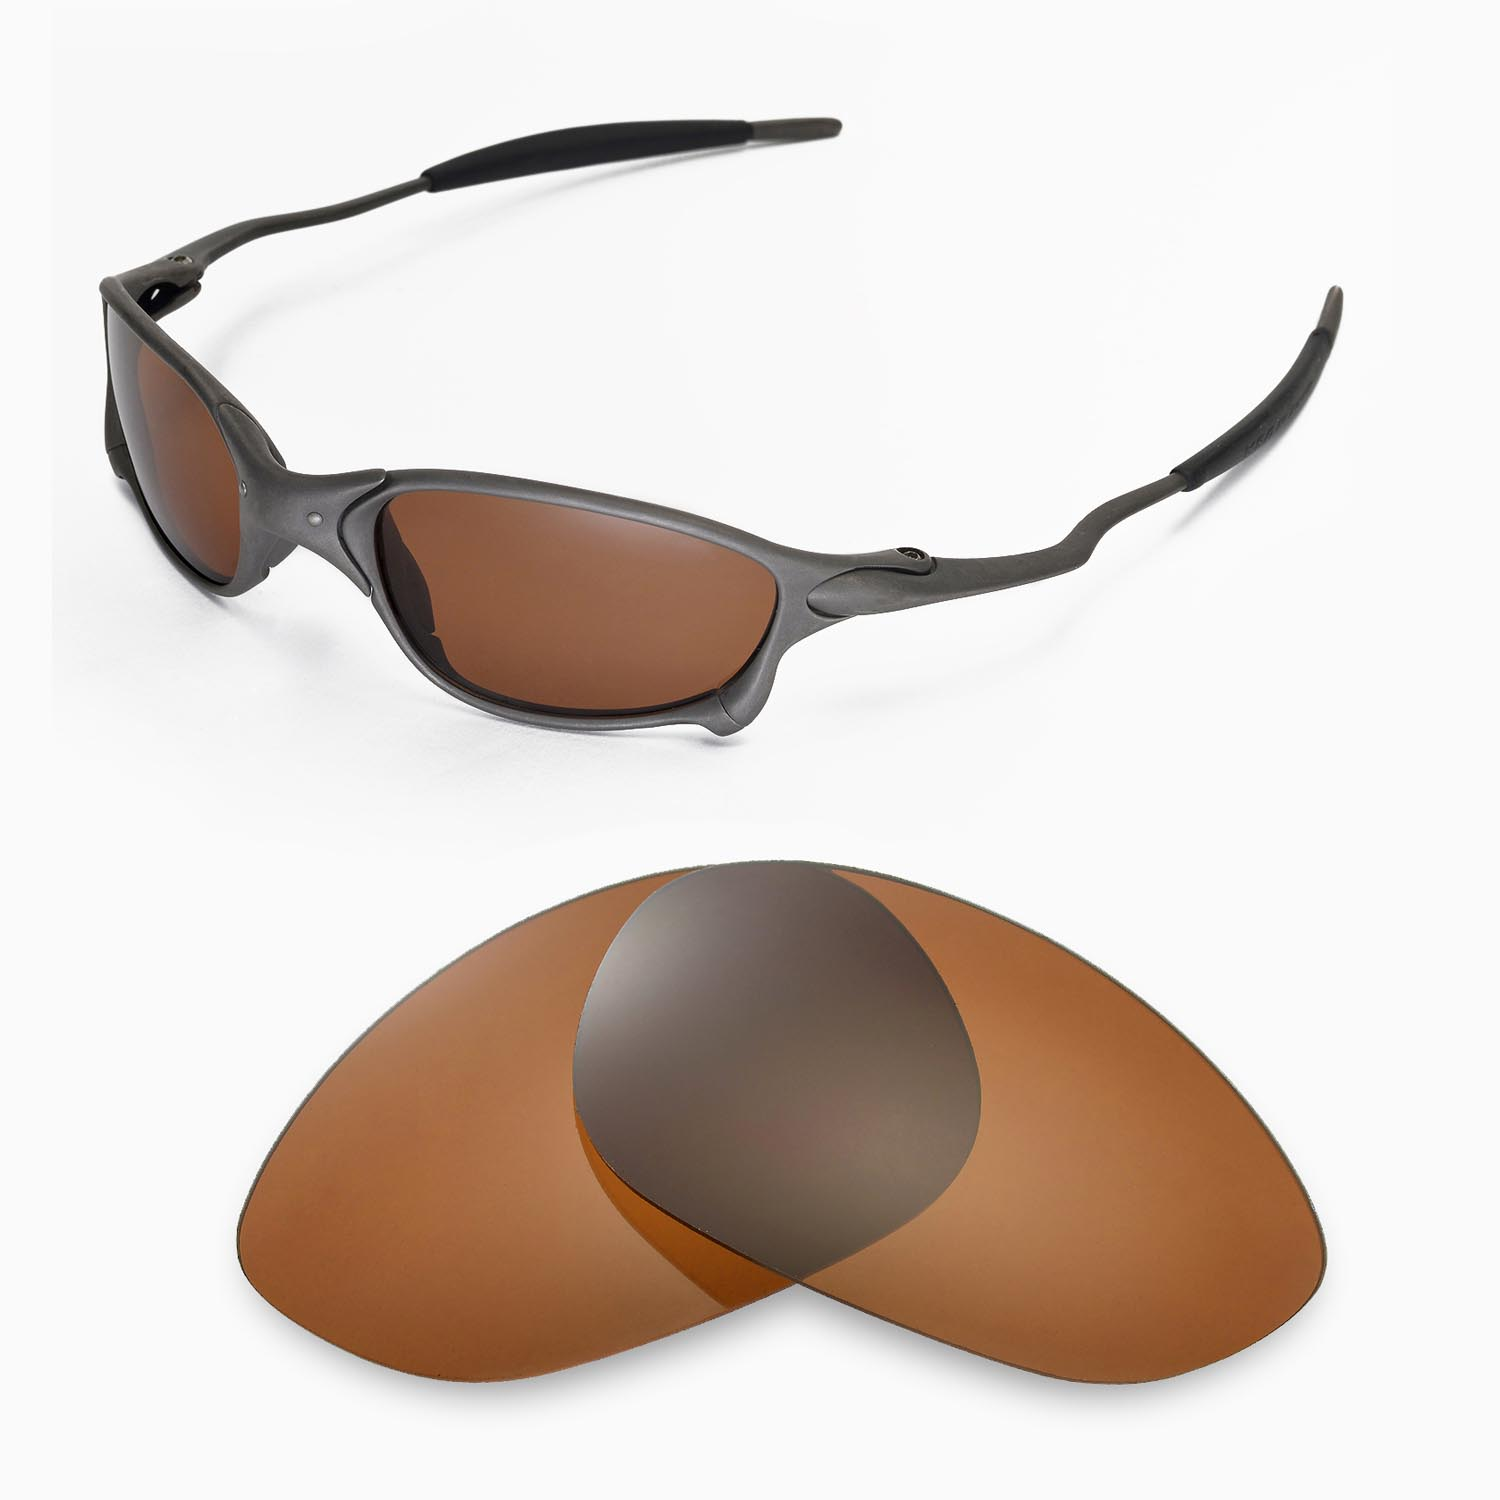 8a2cb9ca45 Details about New Walleva Brown Polarized Replacement Lenses For Oakley X  Metal XX Sunglasses